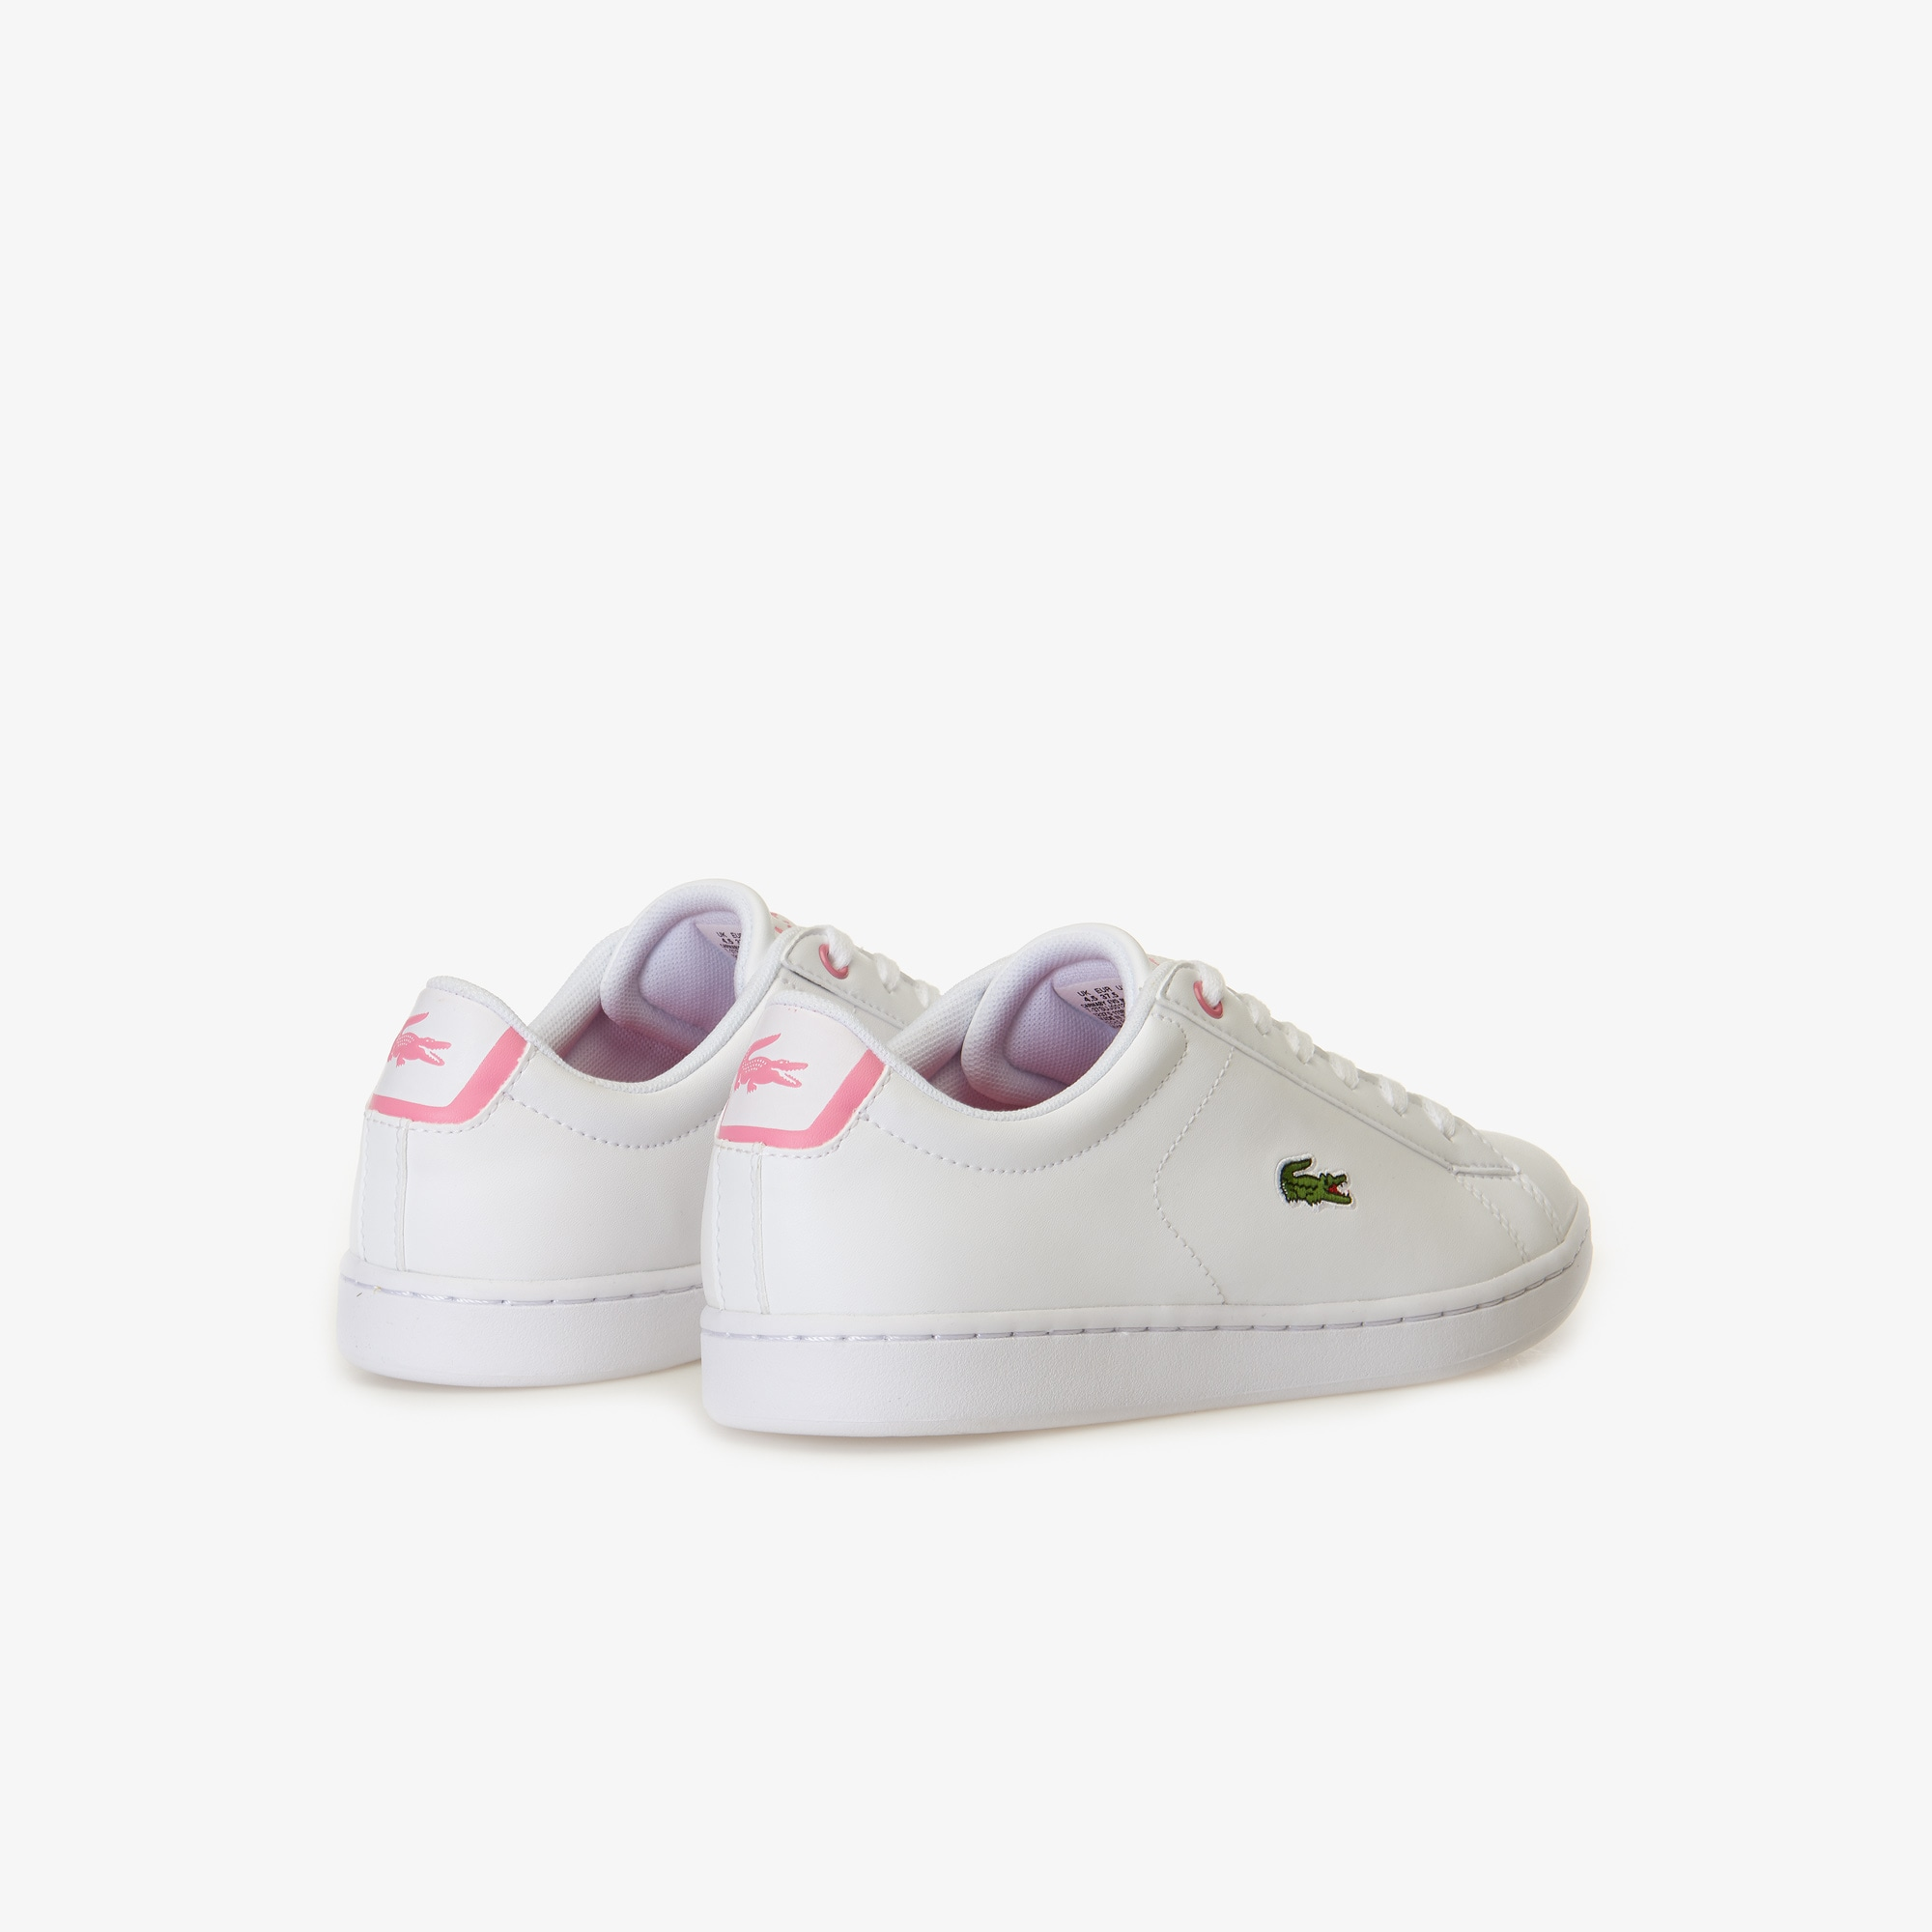 Junior-Sneakers CARNABY EVO aus Synthetik